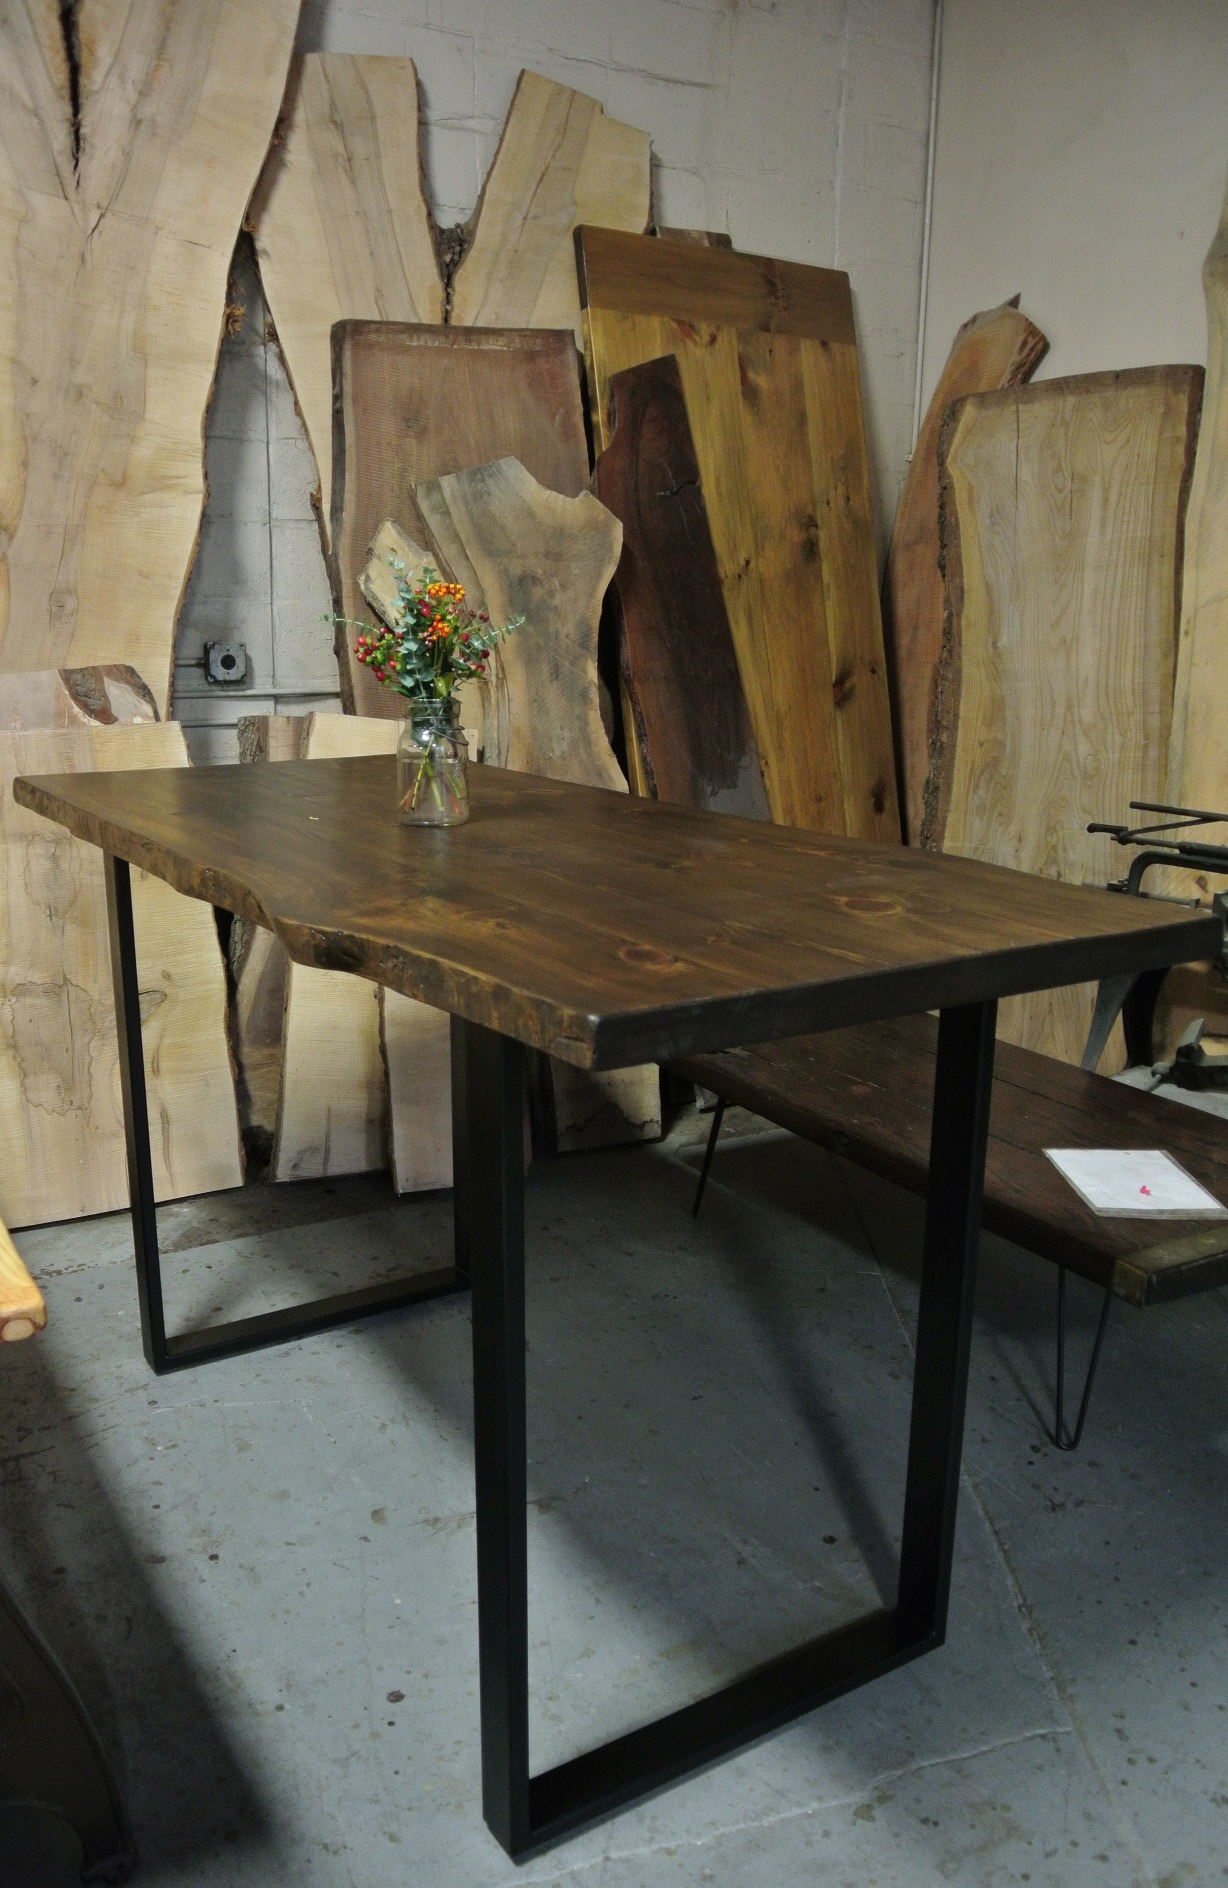 Tall Pine Live Edge Table on 3x1 Square Legs. Bar Height.